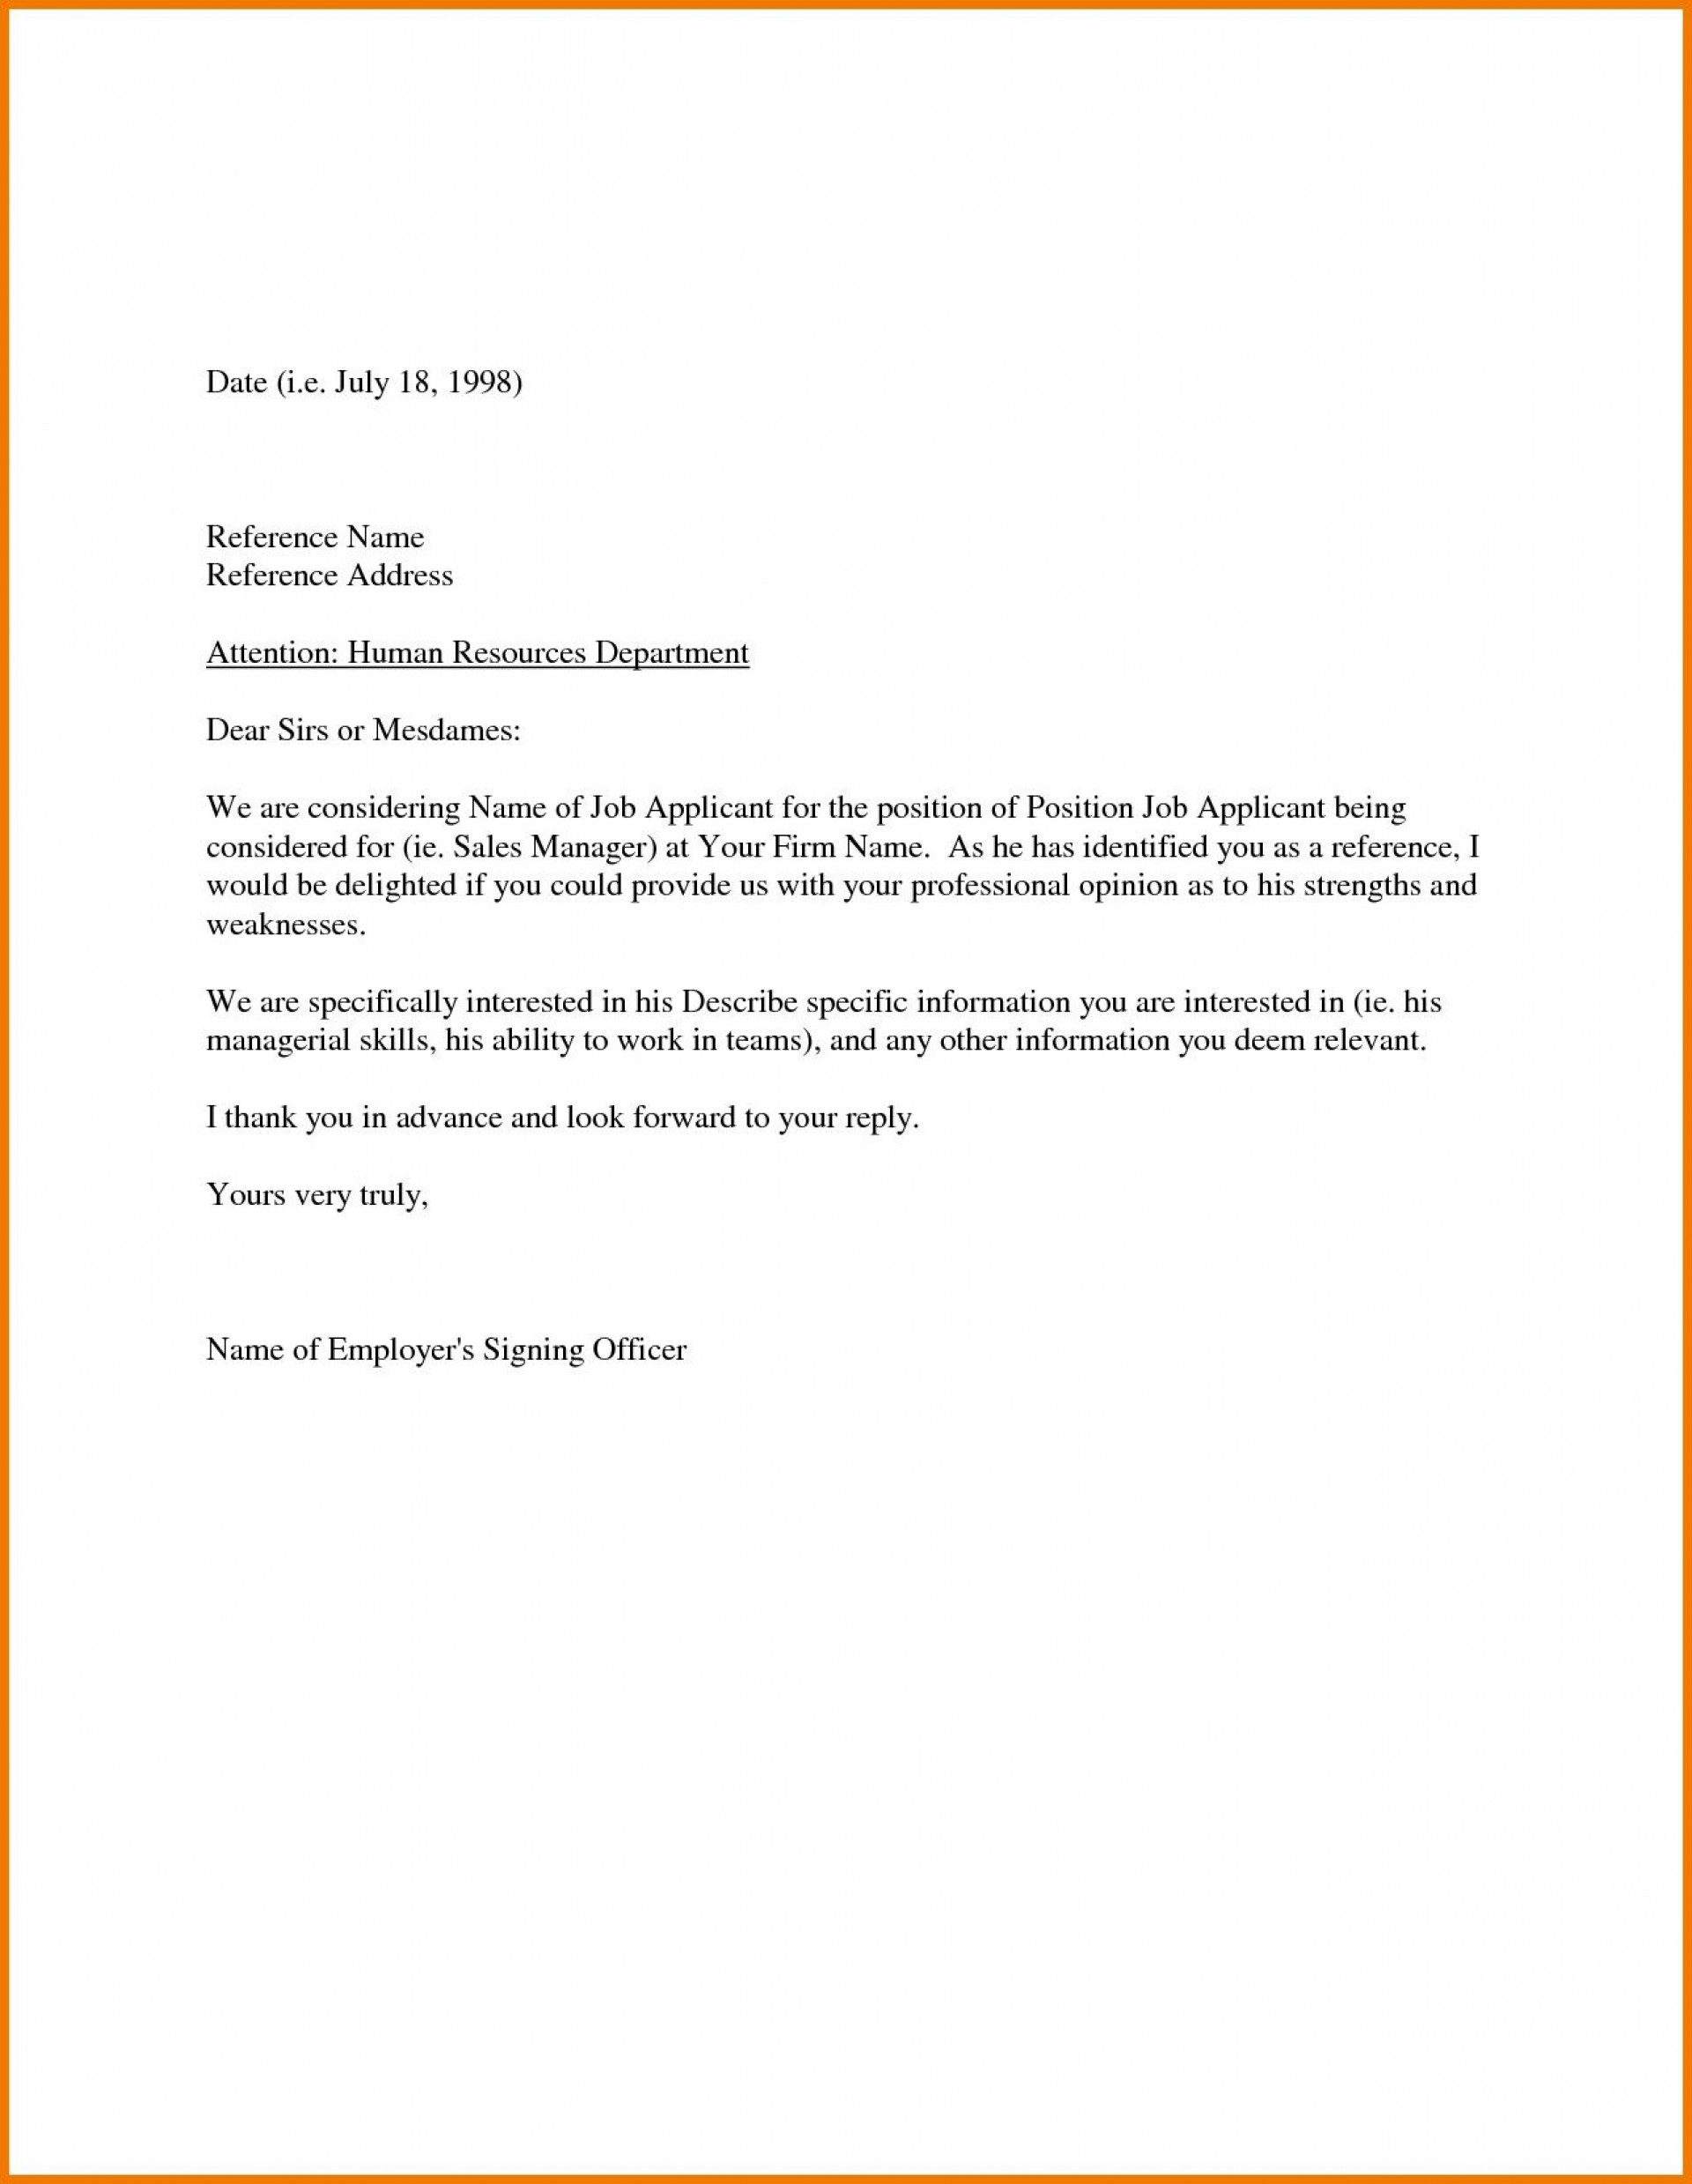 003 Awful Free Reference Letter Template High Definition  Personal Character For Employee Employment1920